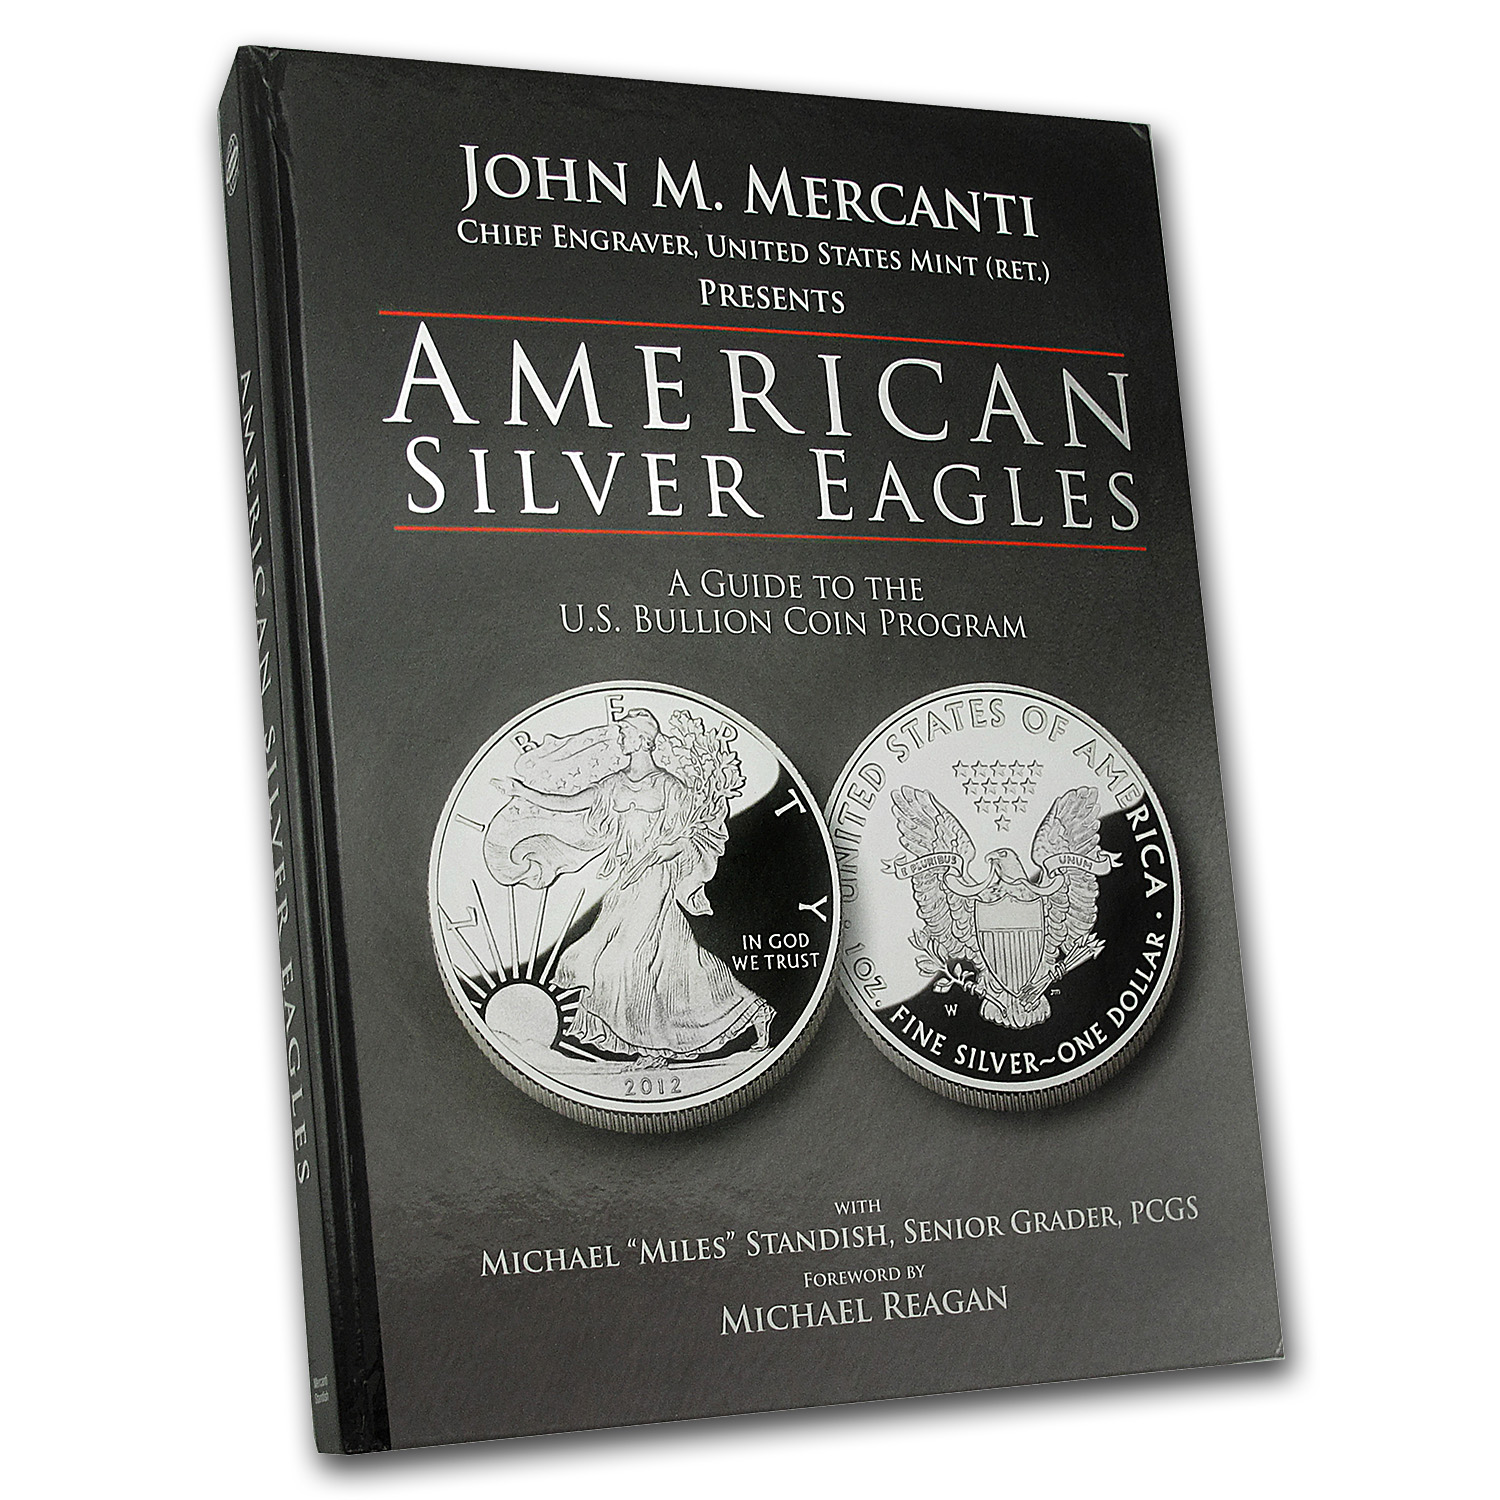 American Silver Eagles - A Guide to the U.S. Bullion Coin Program